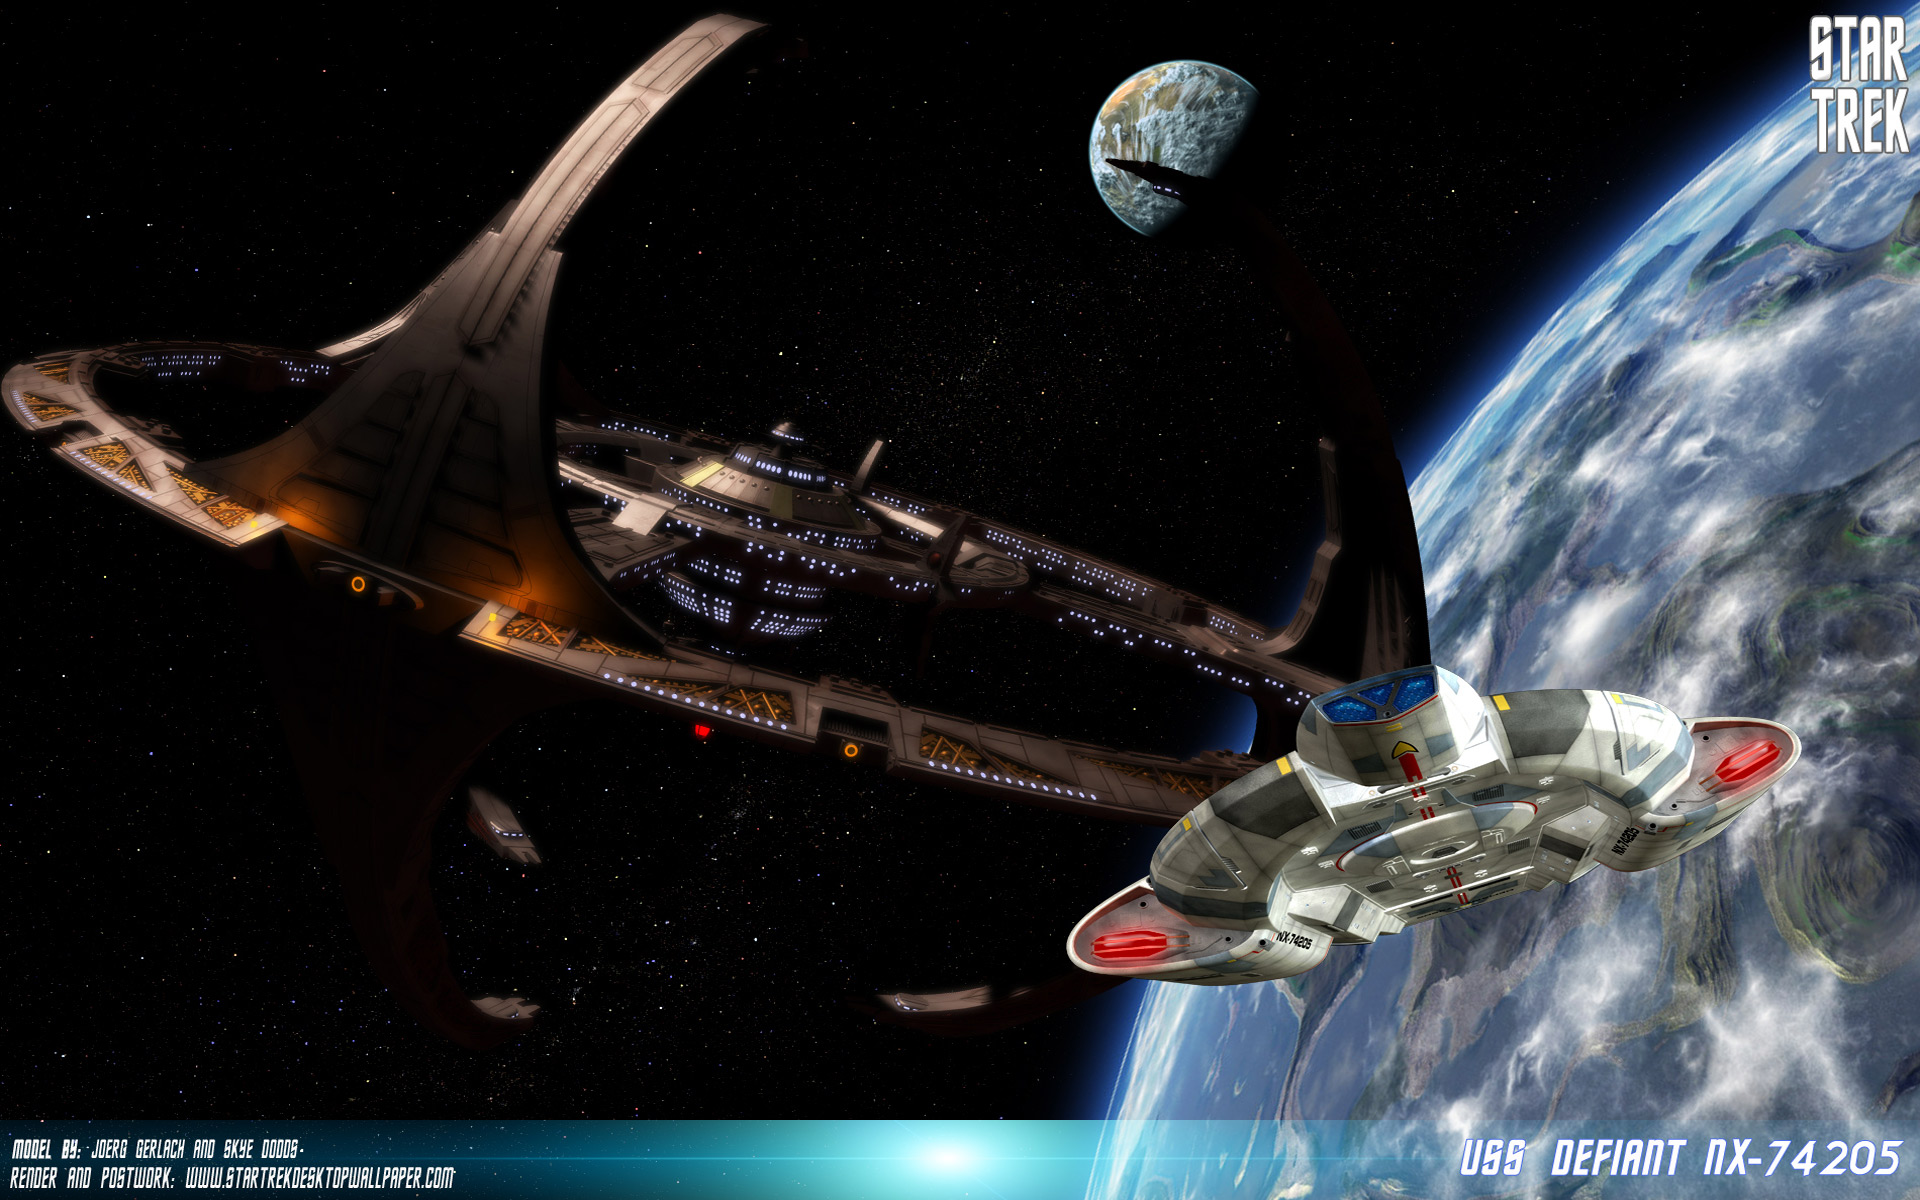 Deep Space Nine USS Defiant Star Trek computer desktop wallpaper 1920x1200